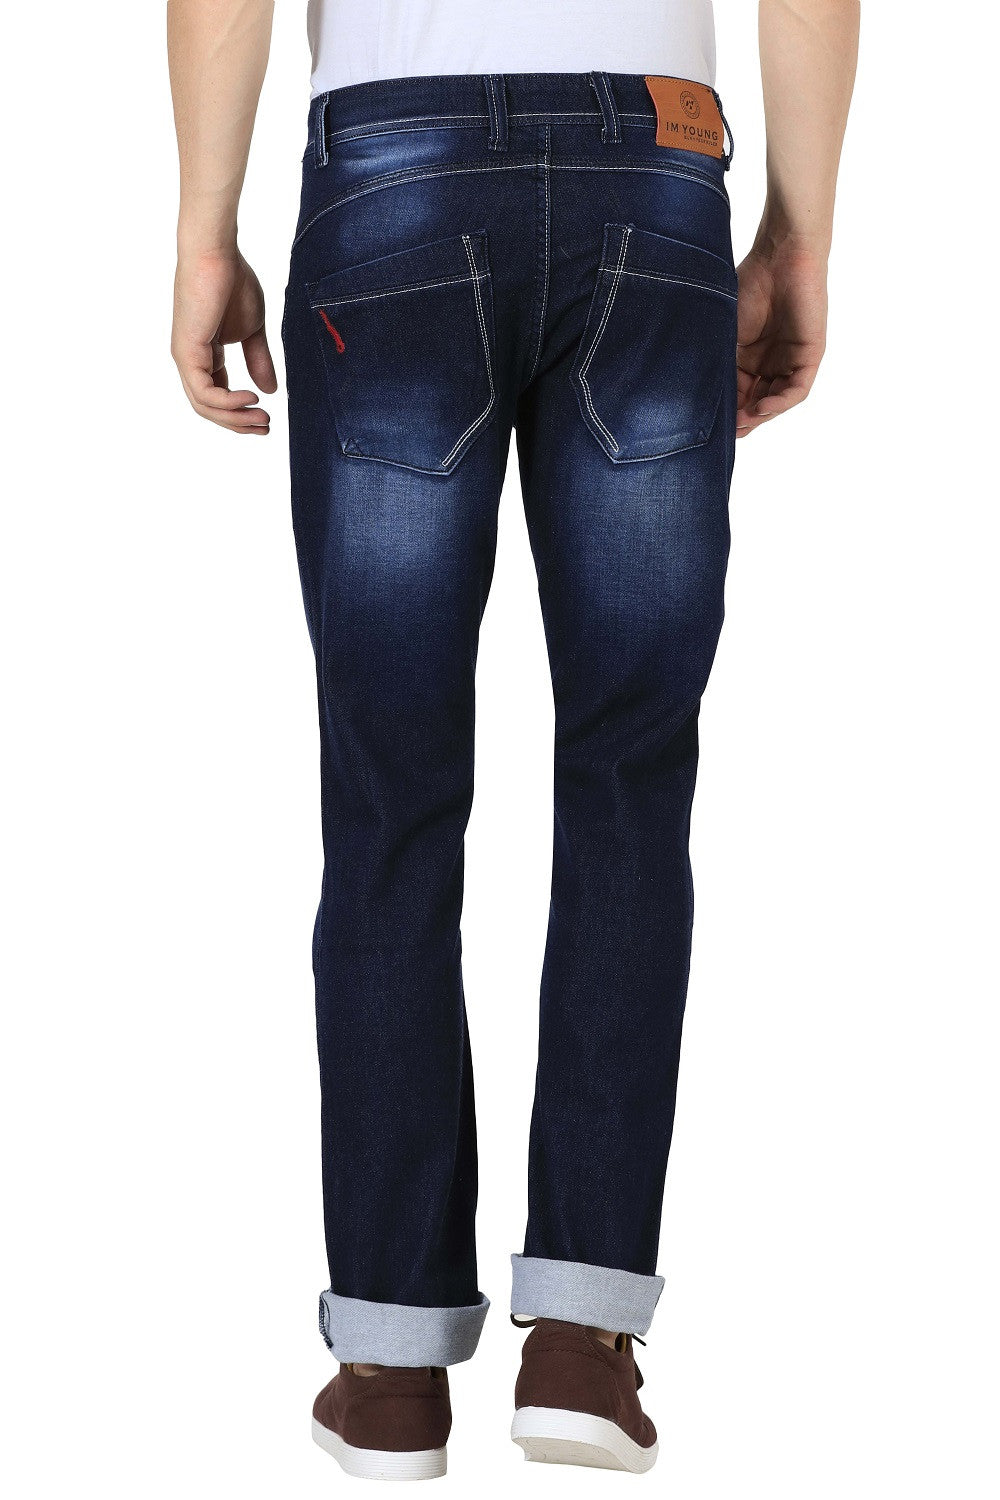 IMYOUNG Dark Blue Slim Fit Jeans